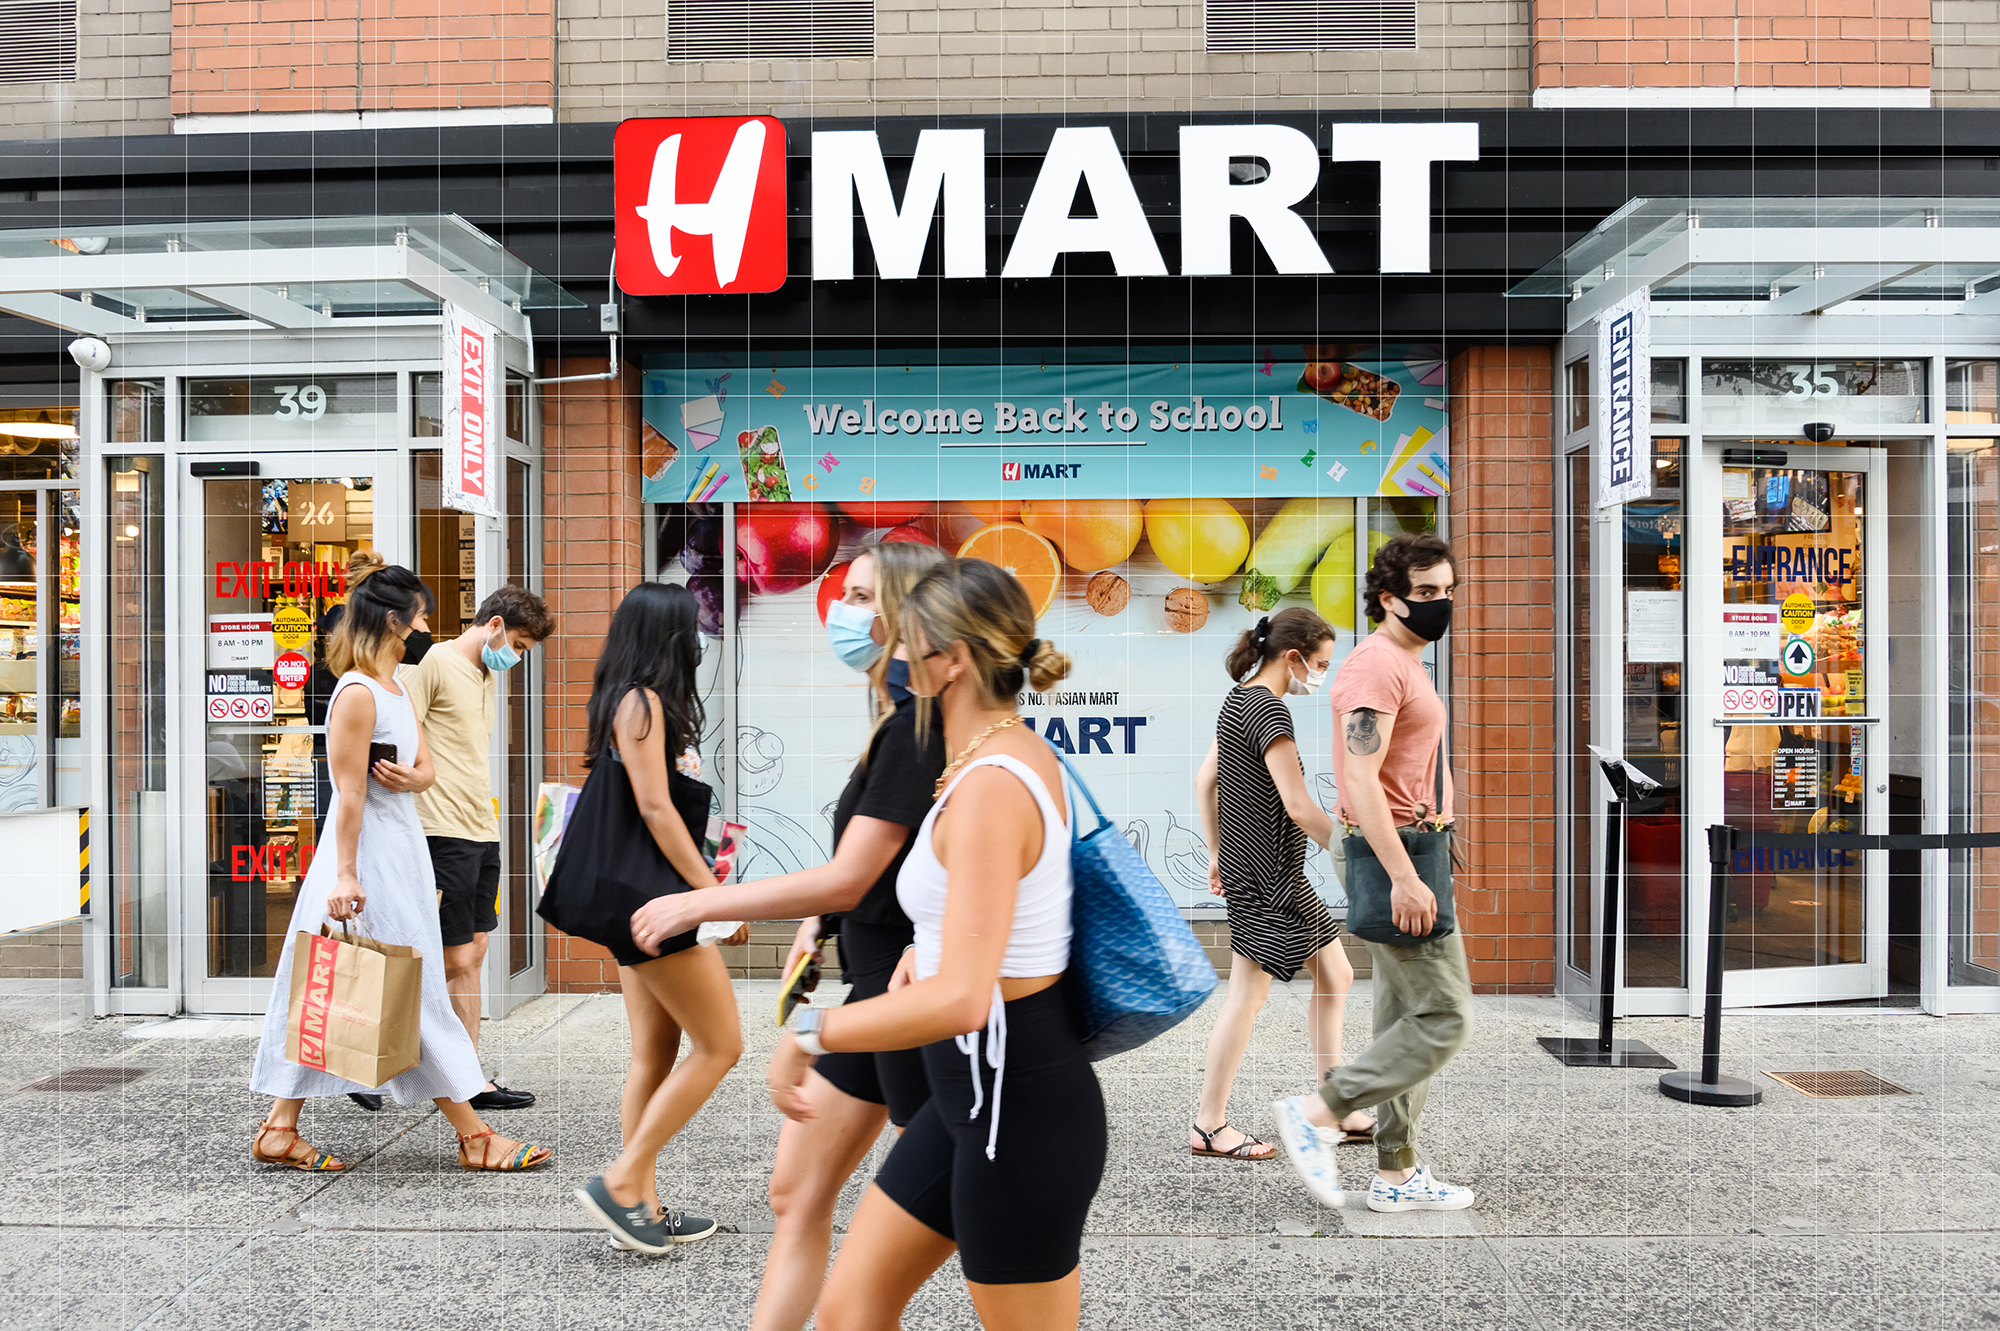 People walking in front of H-Mart